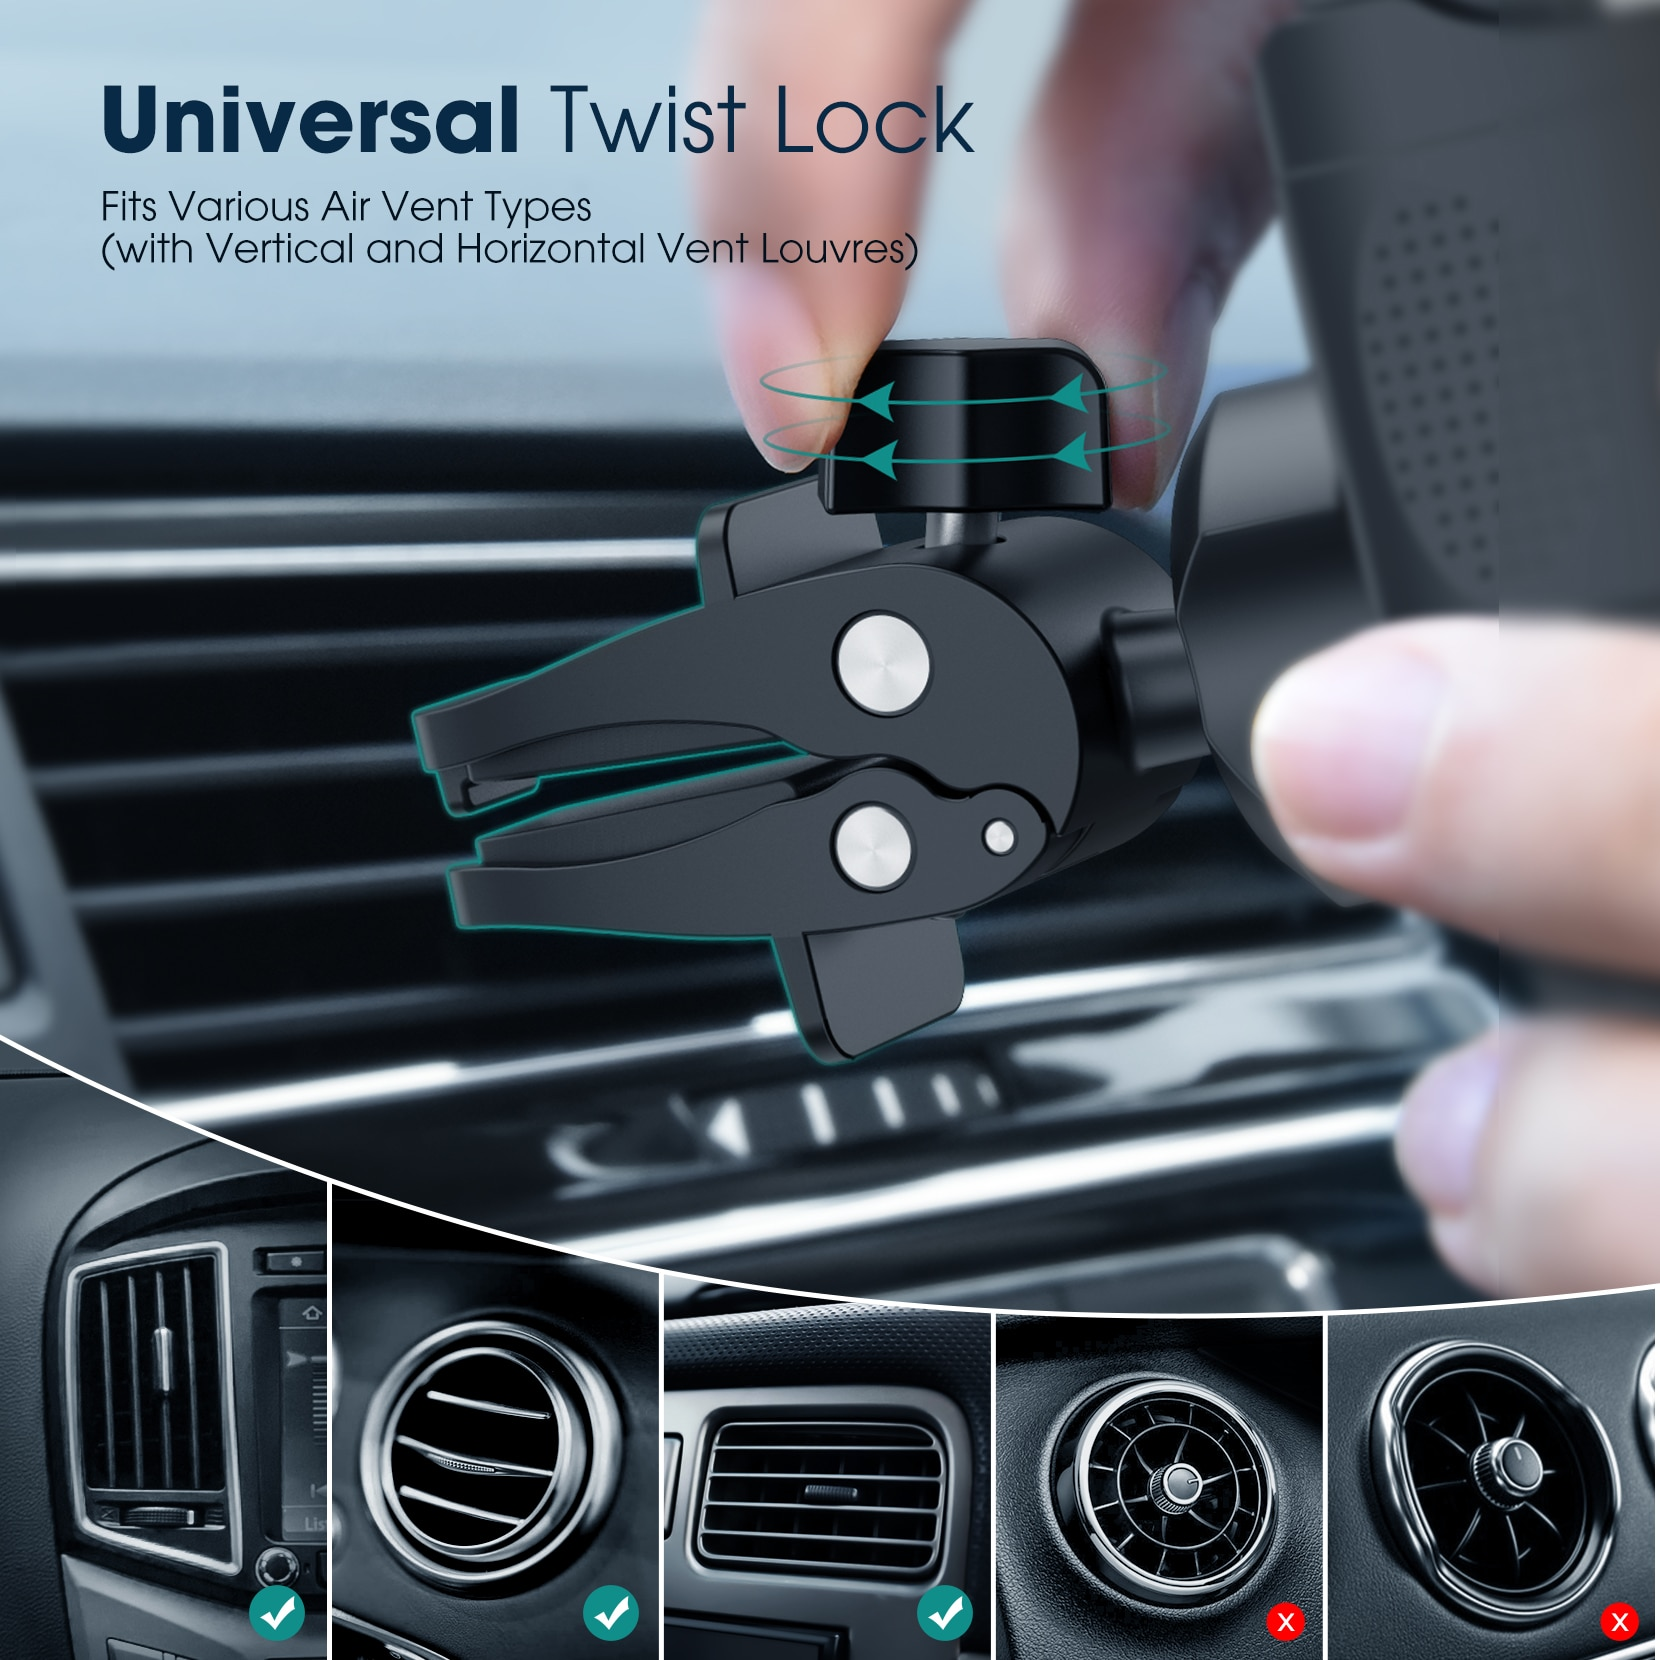 He08b42b9562640cabb7679e76a60971at - Mpow CA174 Universal Car Phone Mount Air Vent Car Phone Holder with Stable Clip Compatible with iPhone 12 11 Pro Max XS 8 Galaxy